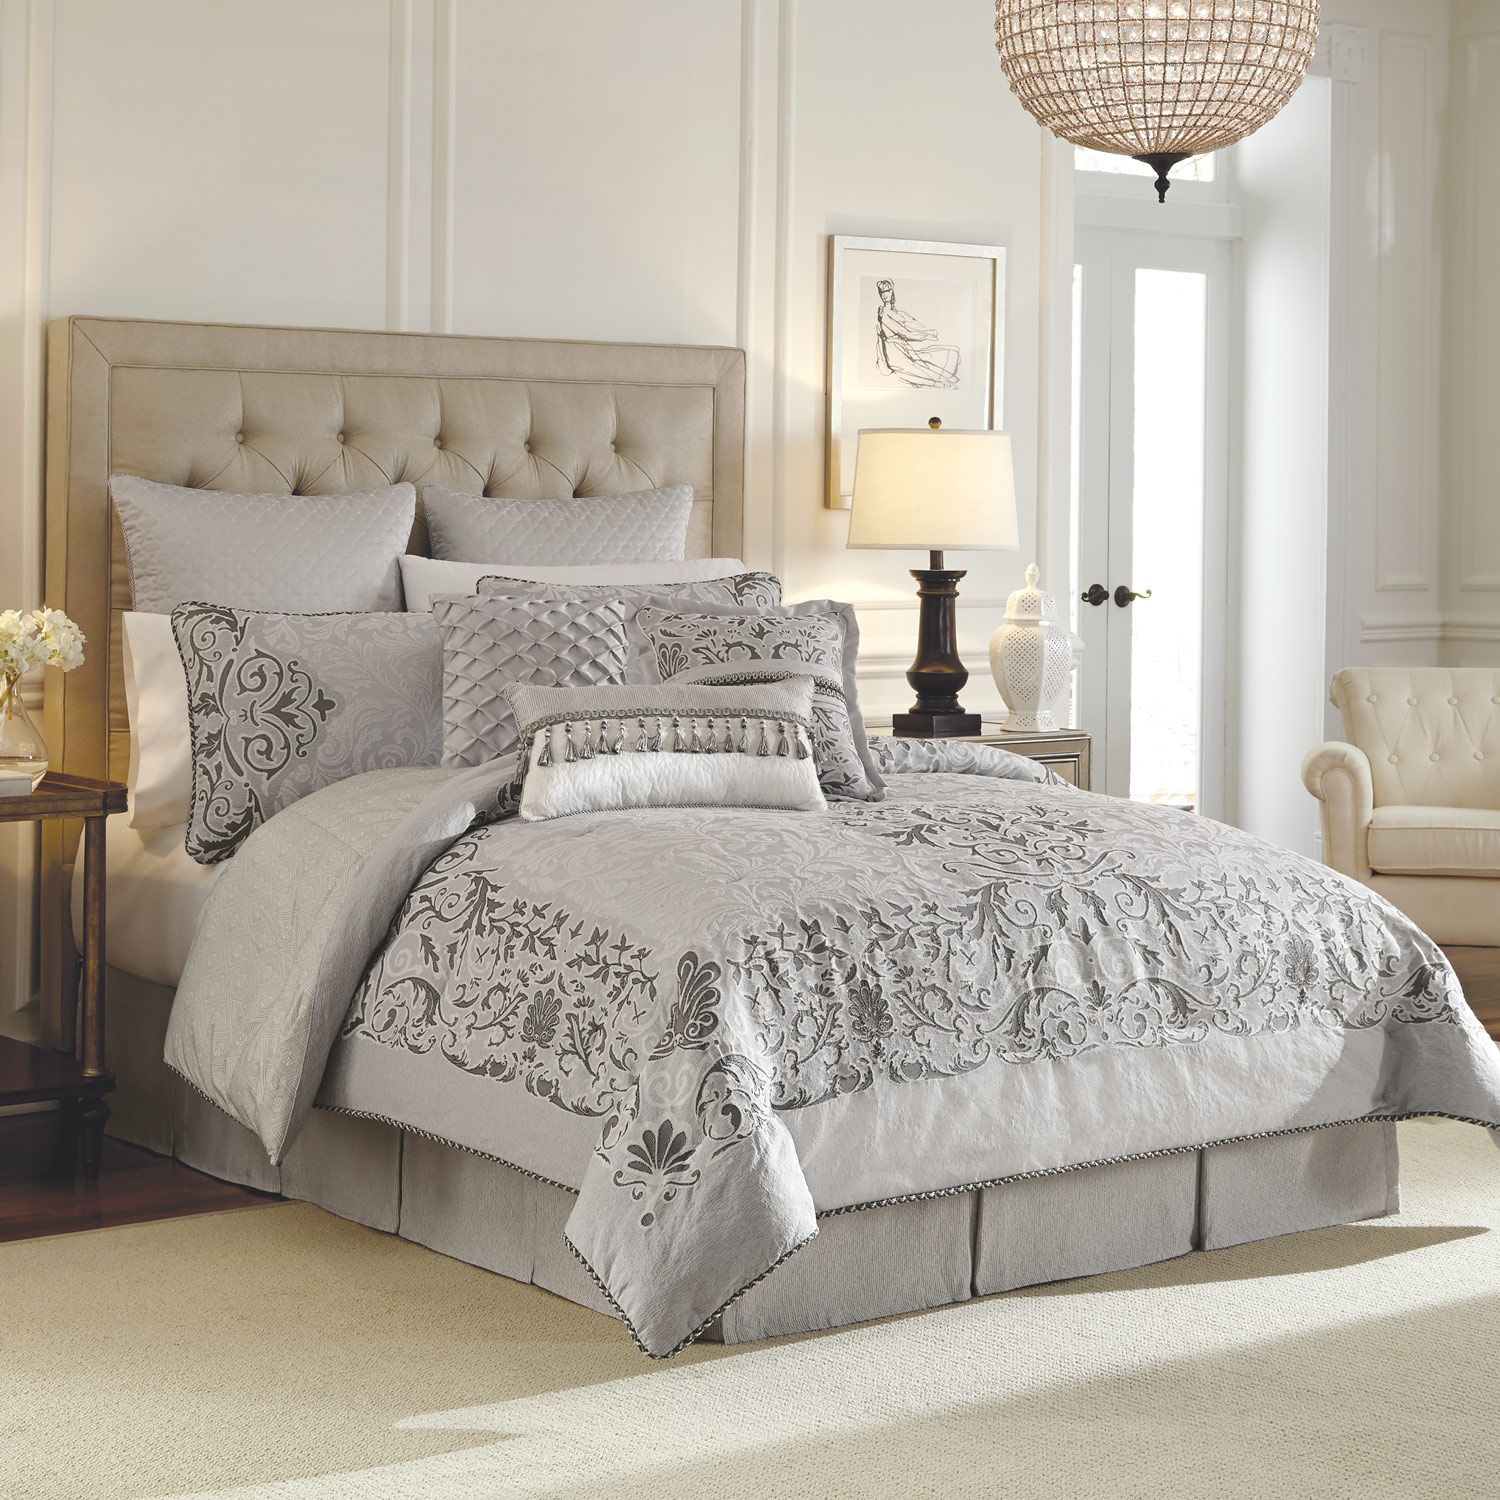 Cute california king bedding for bedroom design with california king bed frame